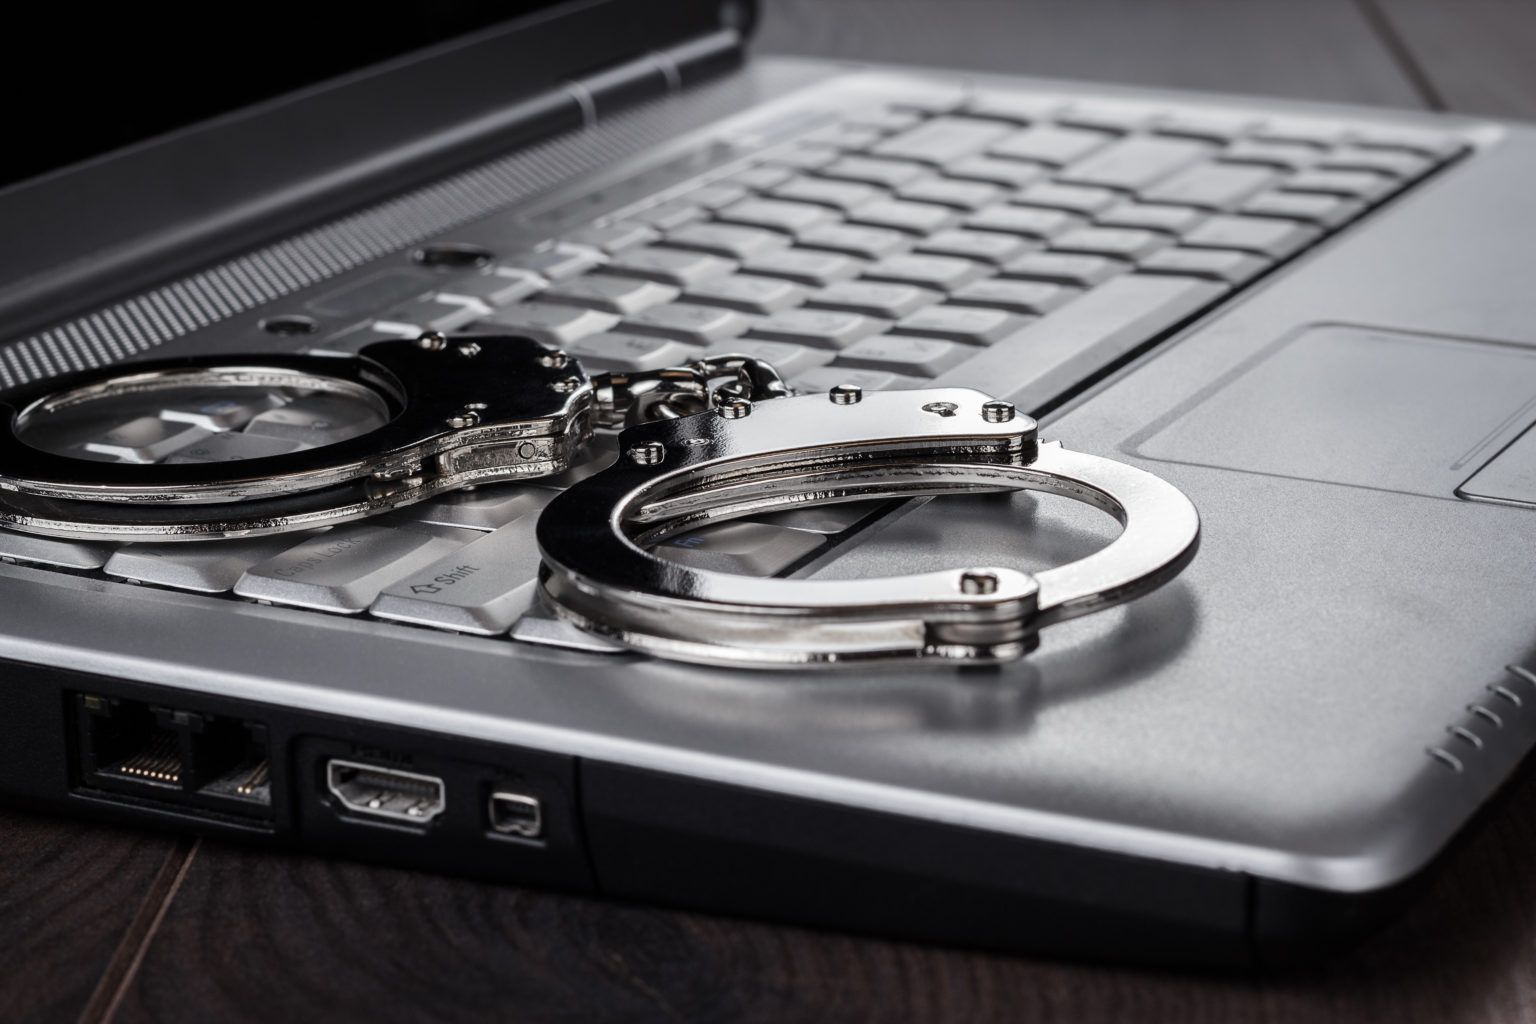 /assets/Uploads/Crime-Criminal-Justice/School-of-Law-CCJ-handcuffs-on-laptop-cyber-crime-concept-P3J7FHN-1.jpg